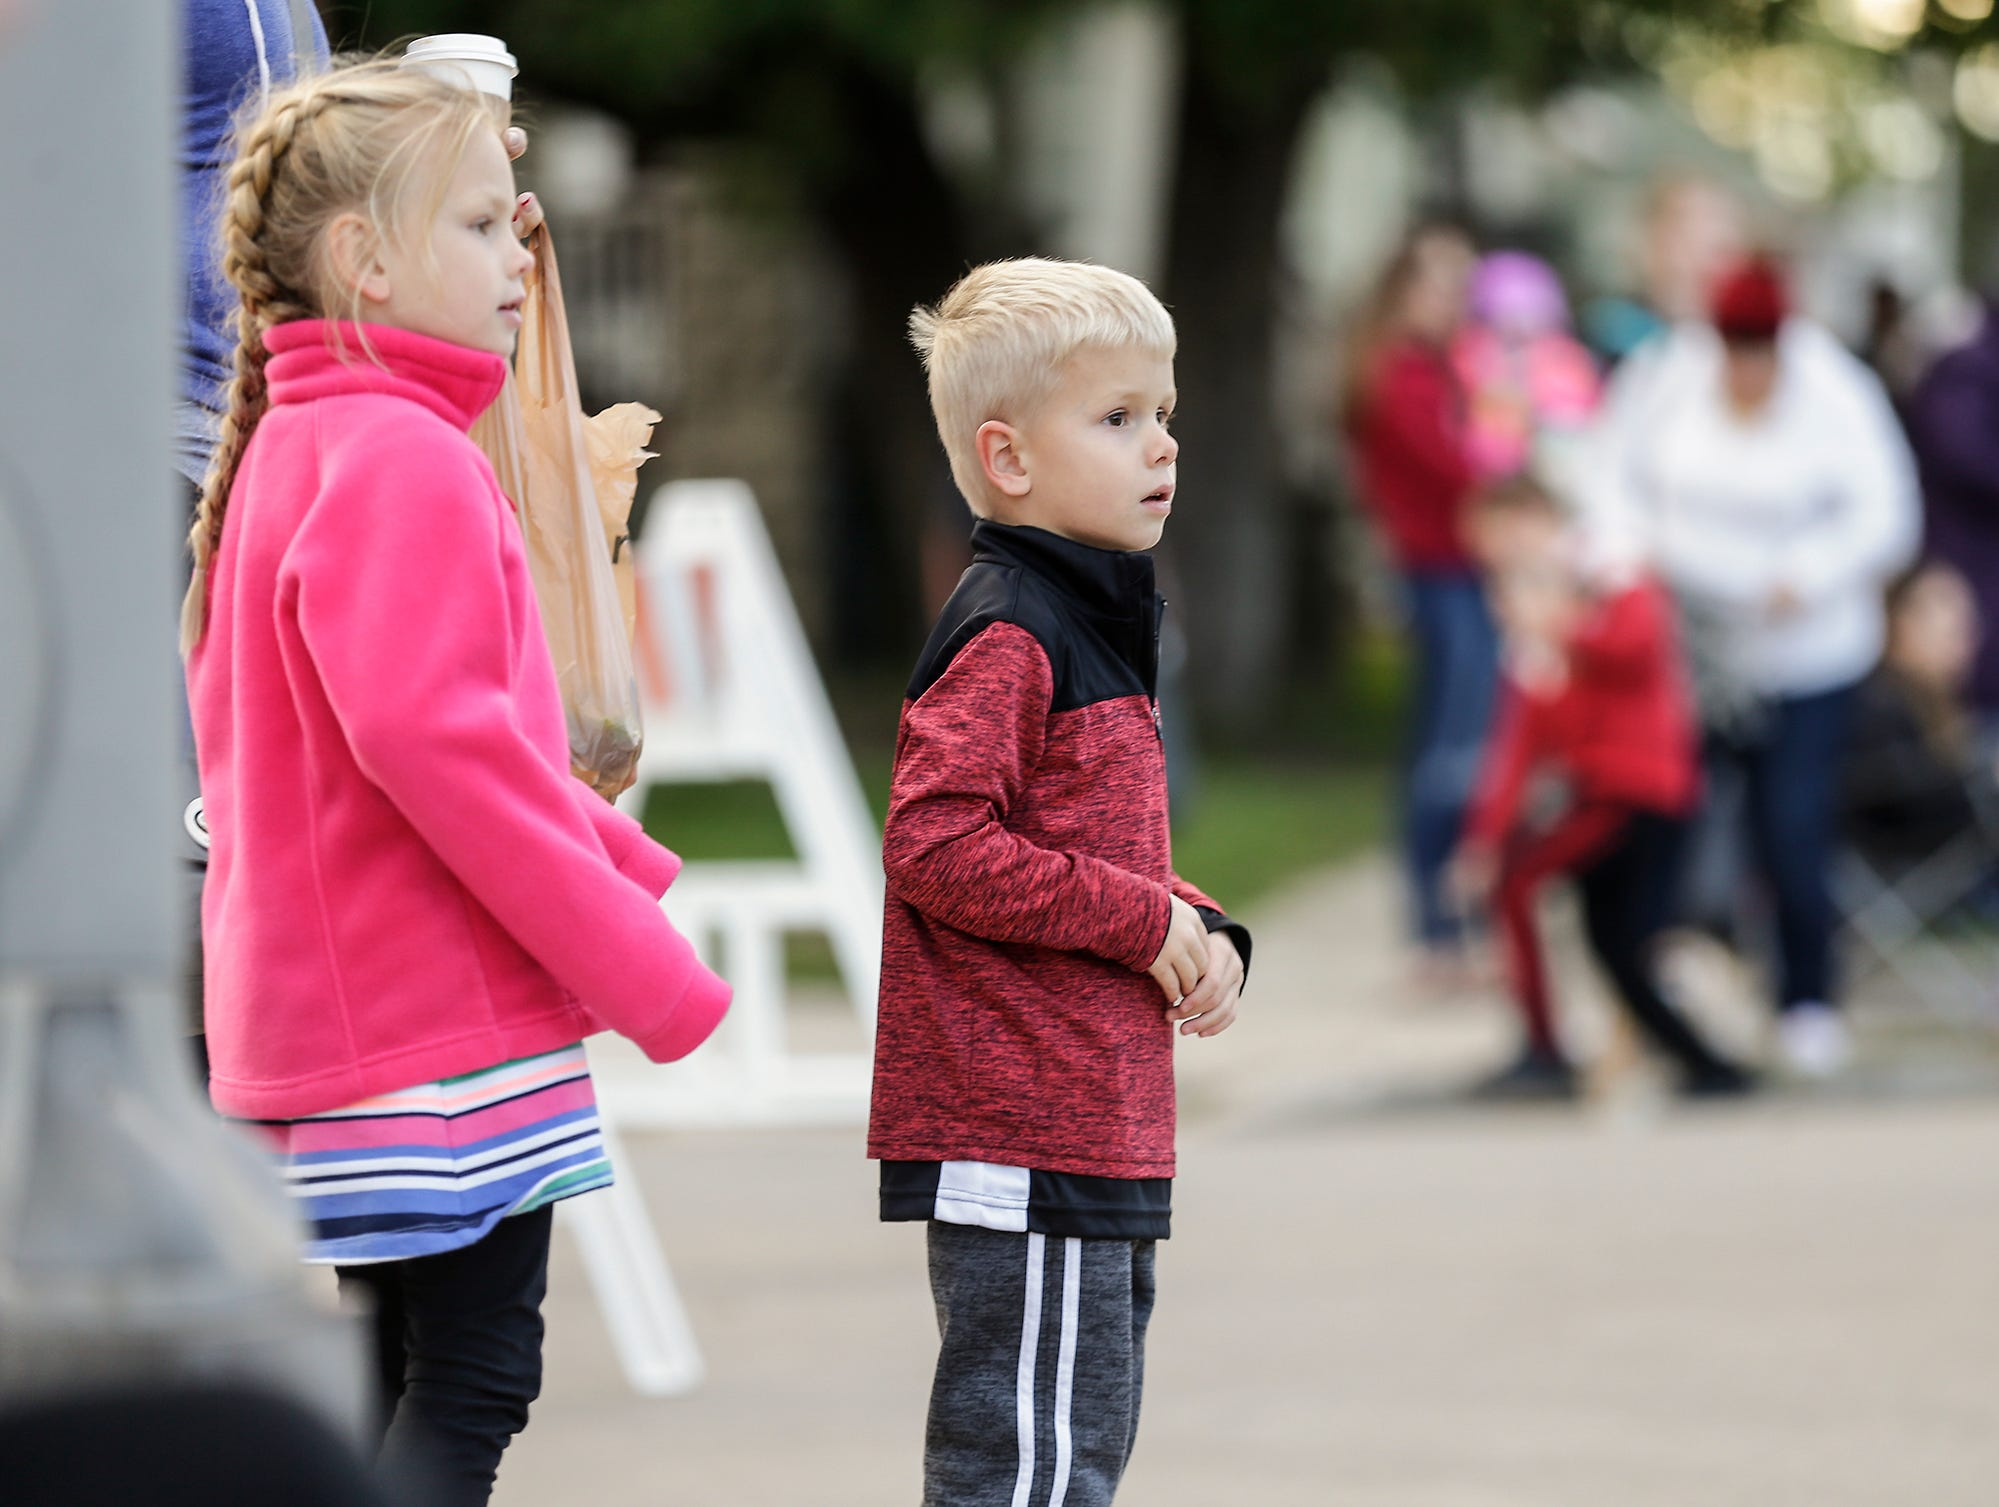 Natalie and Logan Regal of Fond du Lac watch the Fond du Lac High School football homecoming parade Friday, Sept. 28, 2018, which went down portions of Martin Avenue and Ninth Street in Fond du Lac, Wisconsin.